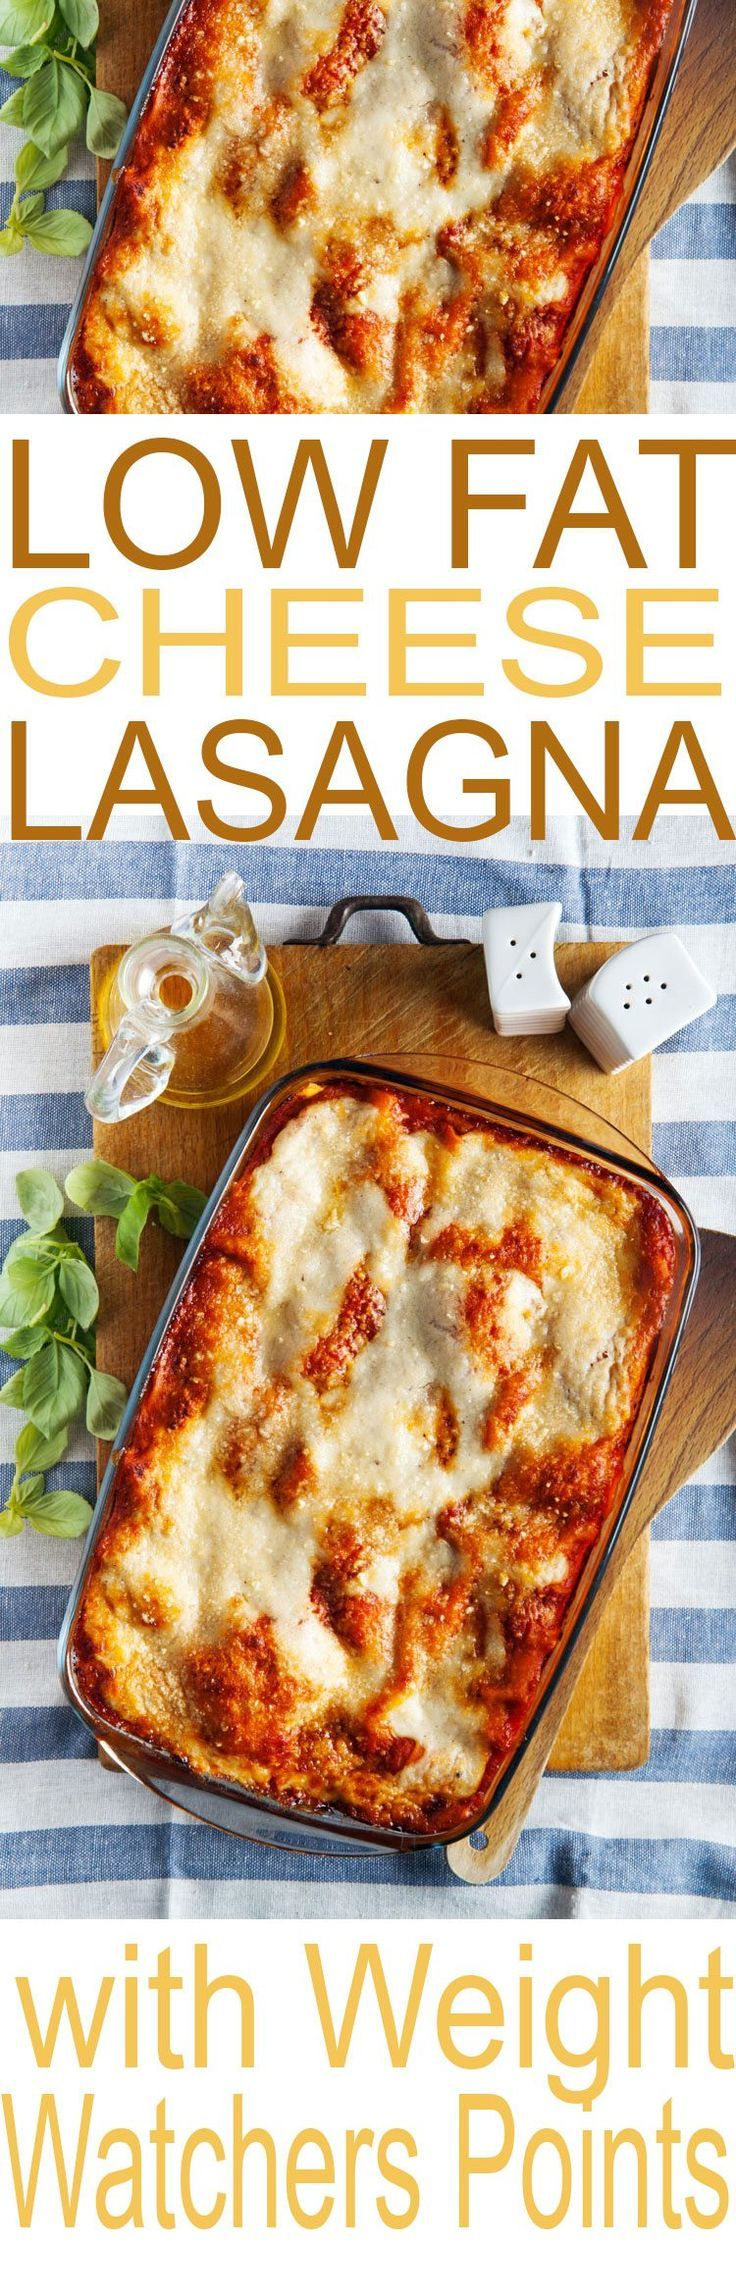 Blue apron weight watchers points - This Is A Weight Watchers Easy Cheese Lasagna At Just 6 Points Per Serving